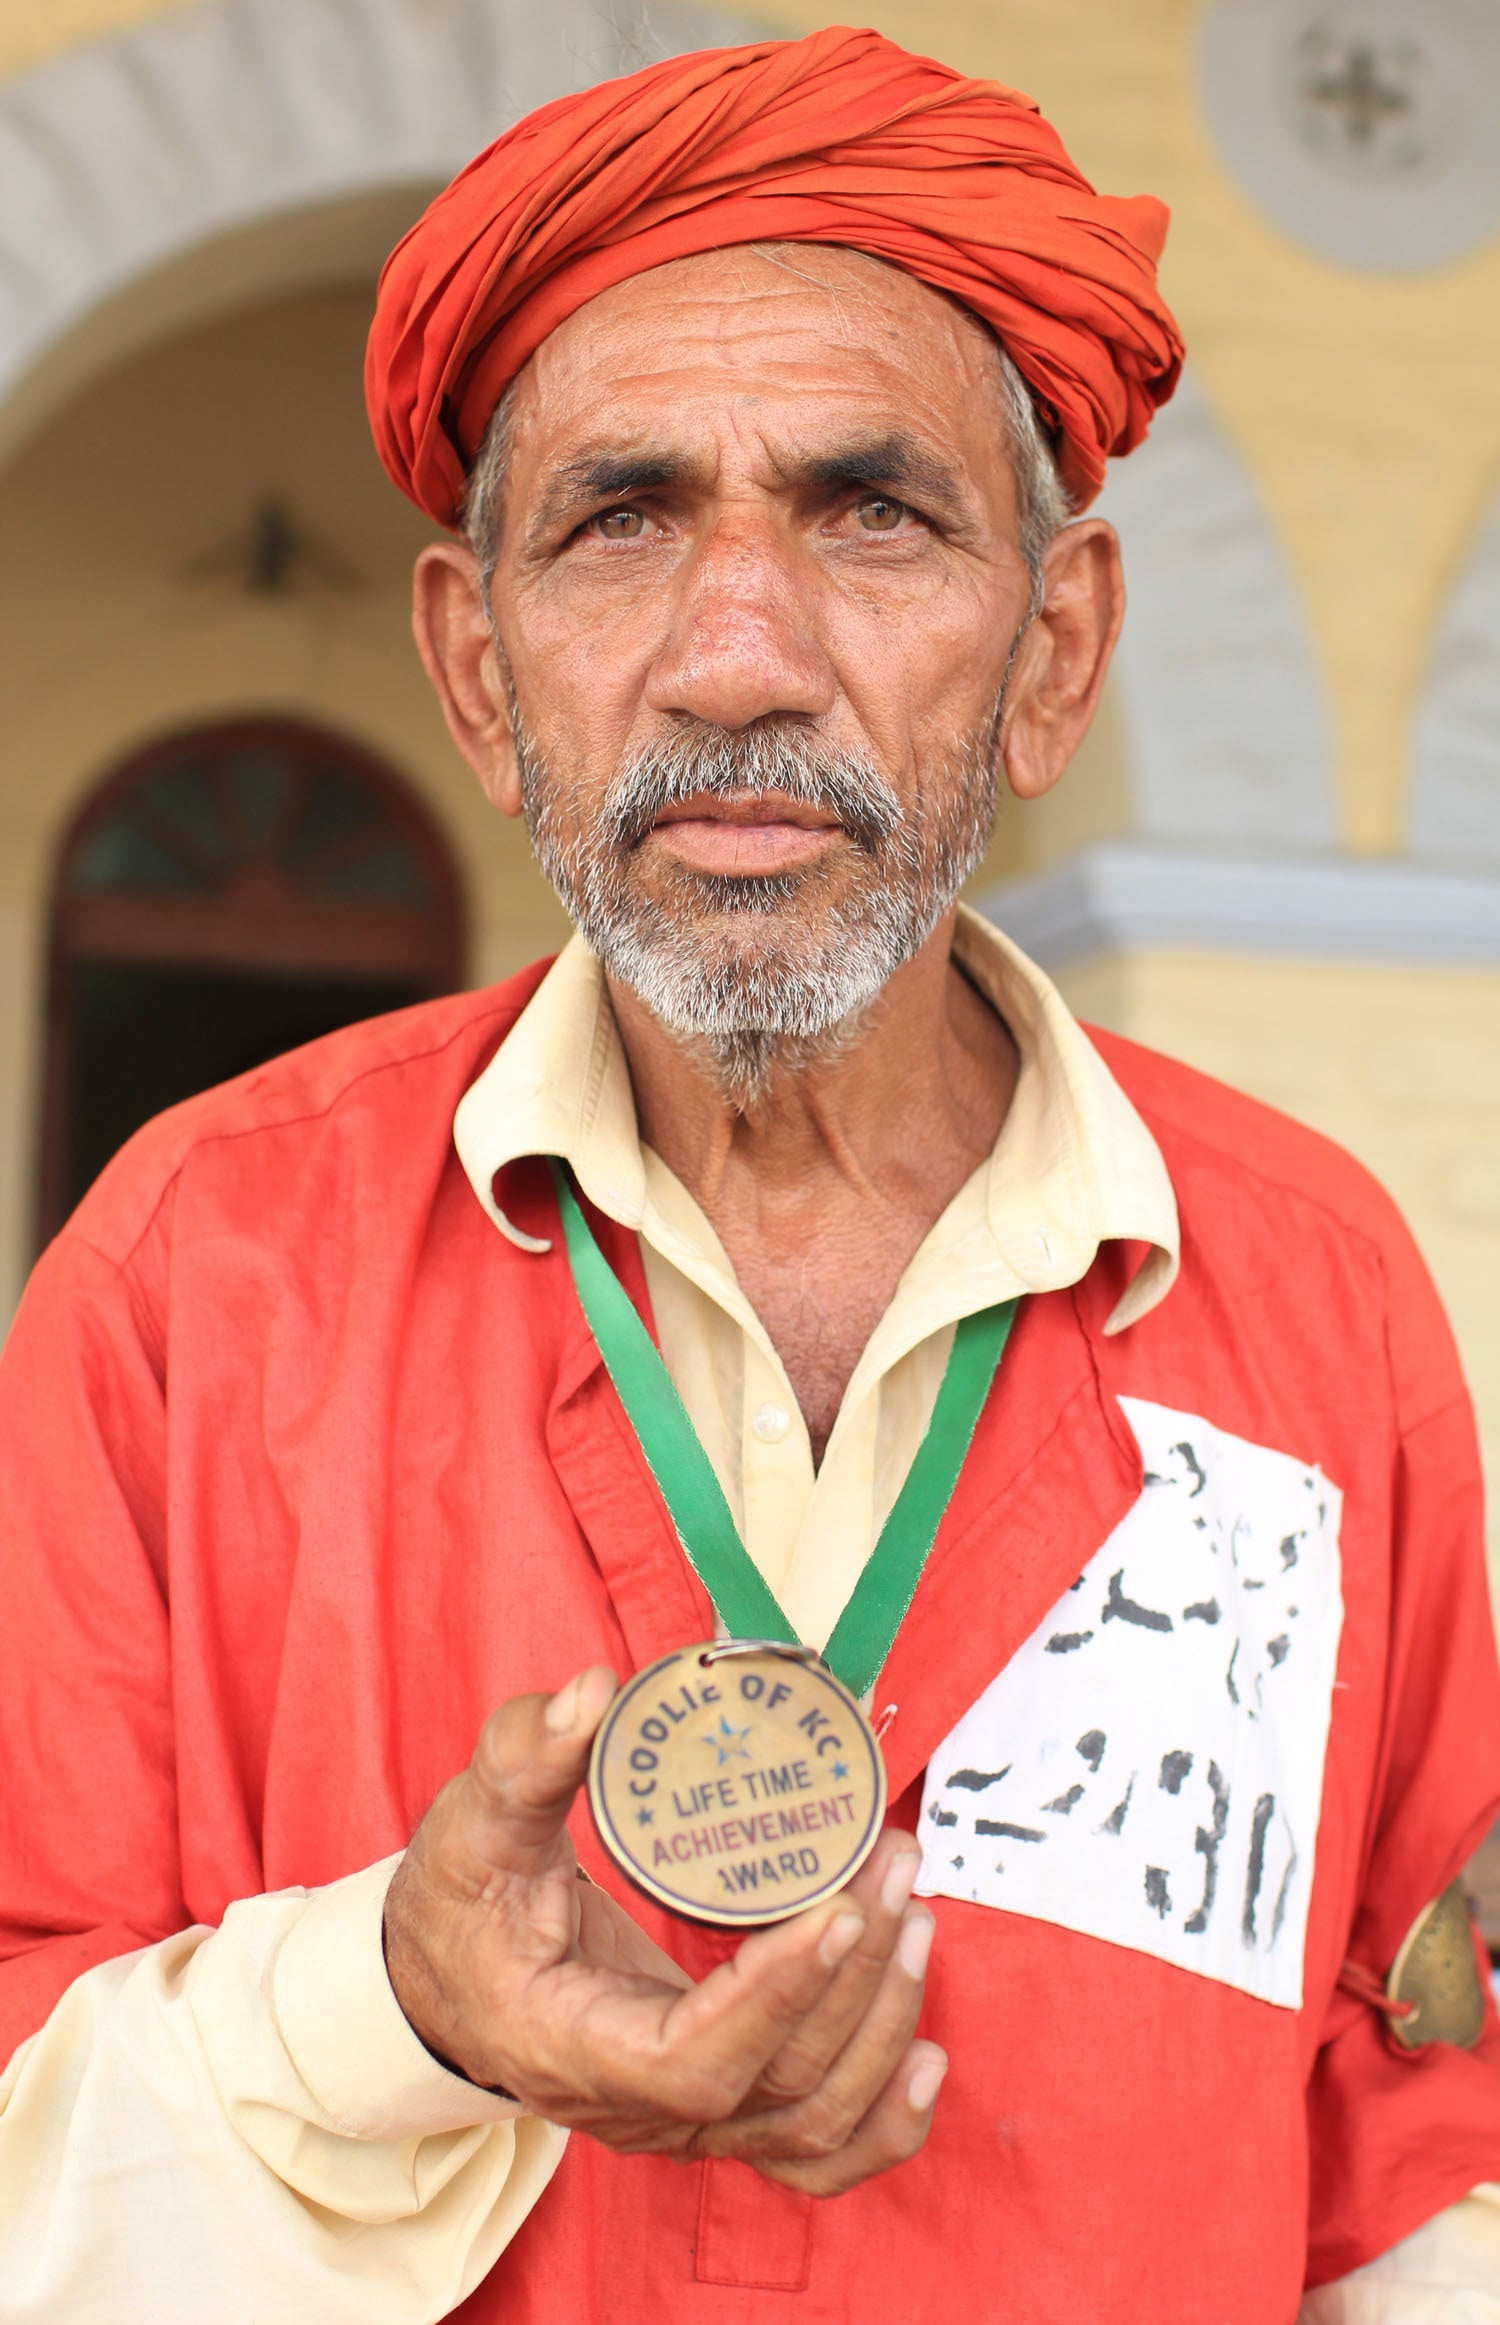 Khanzada shows the medal given to him by the Railway Minister Saad Rafique for being the oldest porter.